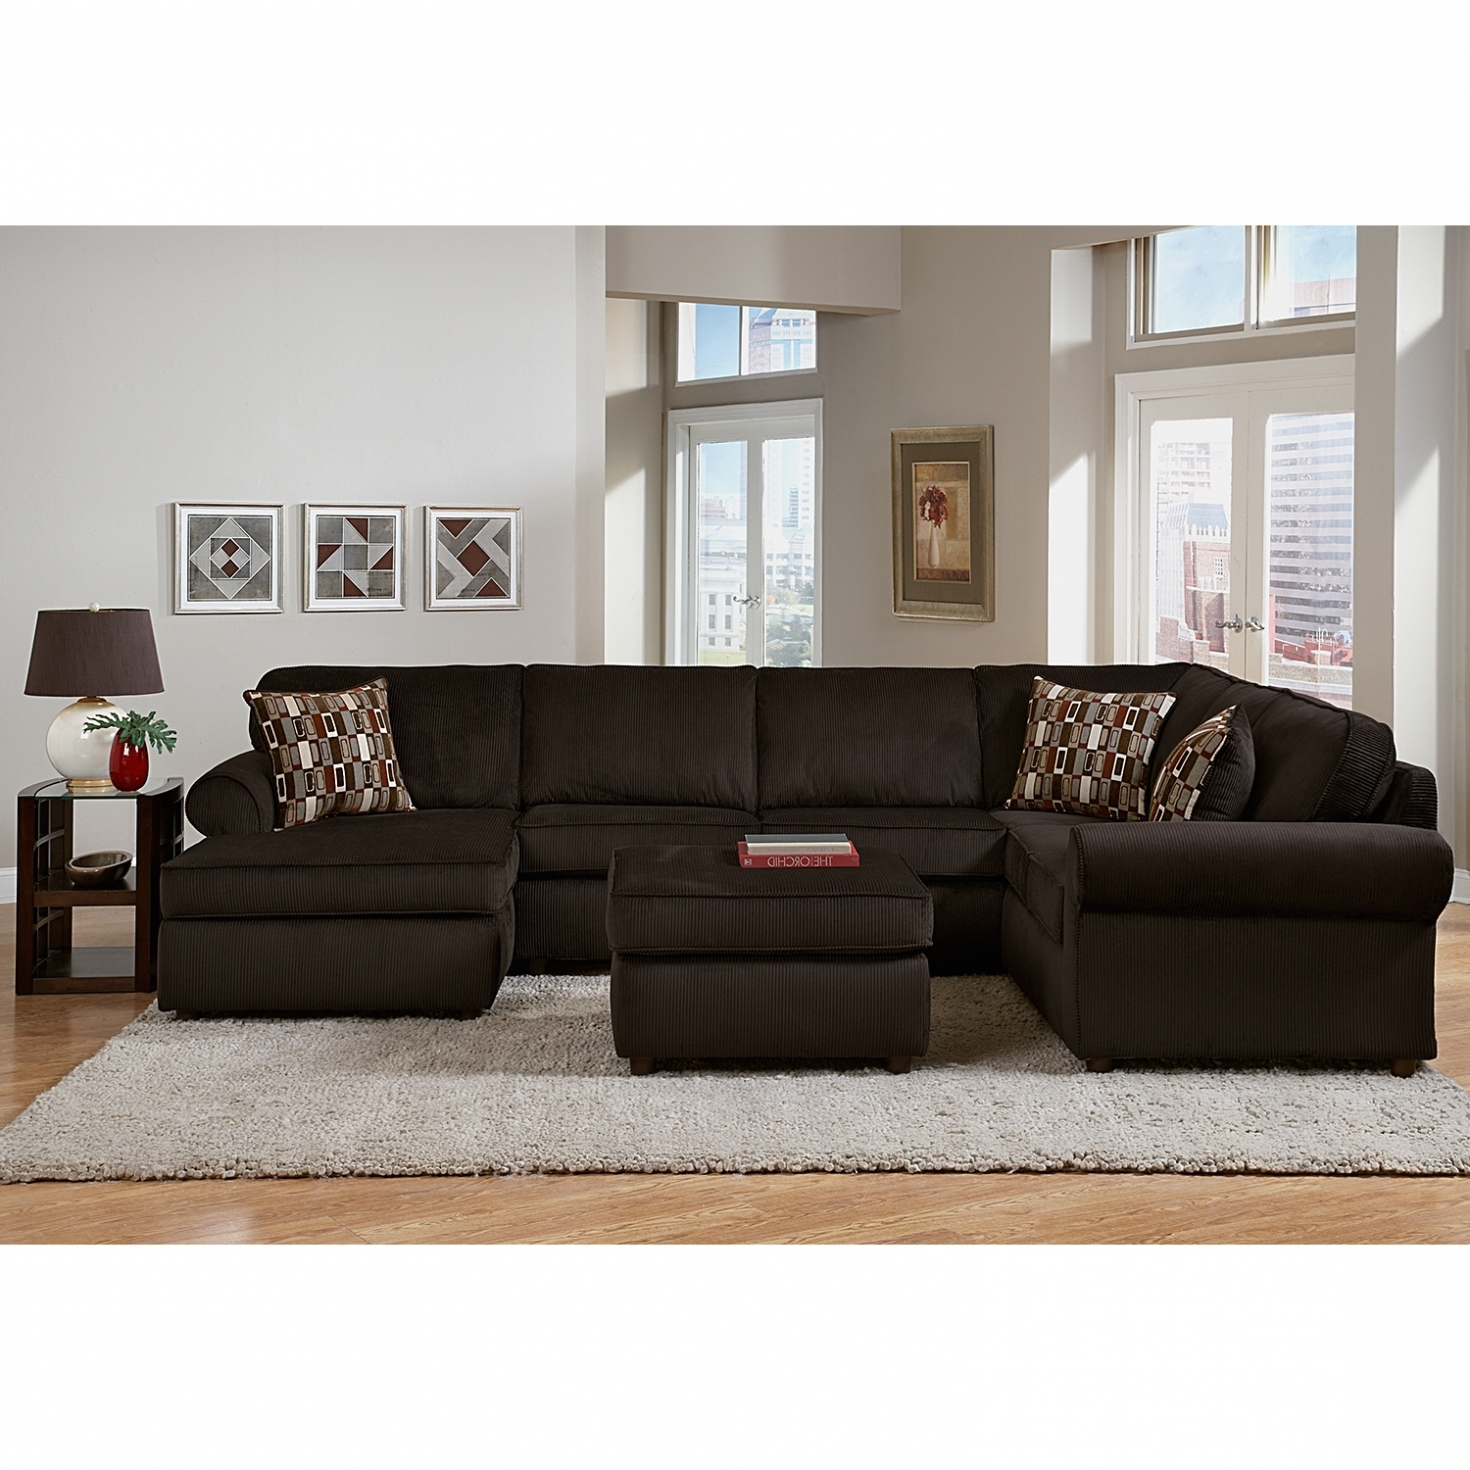 Value City Sectional Sofas Regarding Fashionable Furniture: New Value City Sectional Sofa 32 For Living Room Sofa (View 1 of 20)